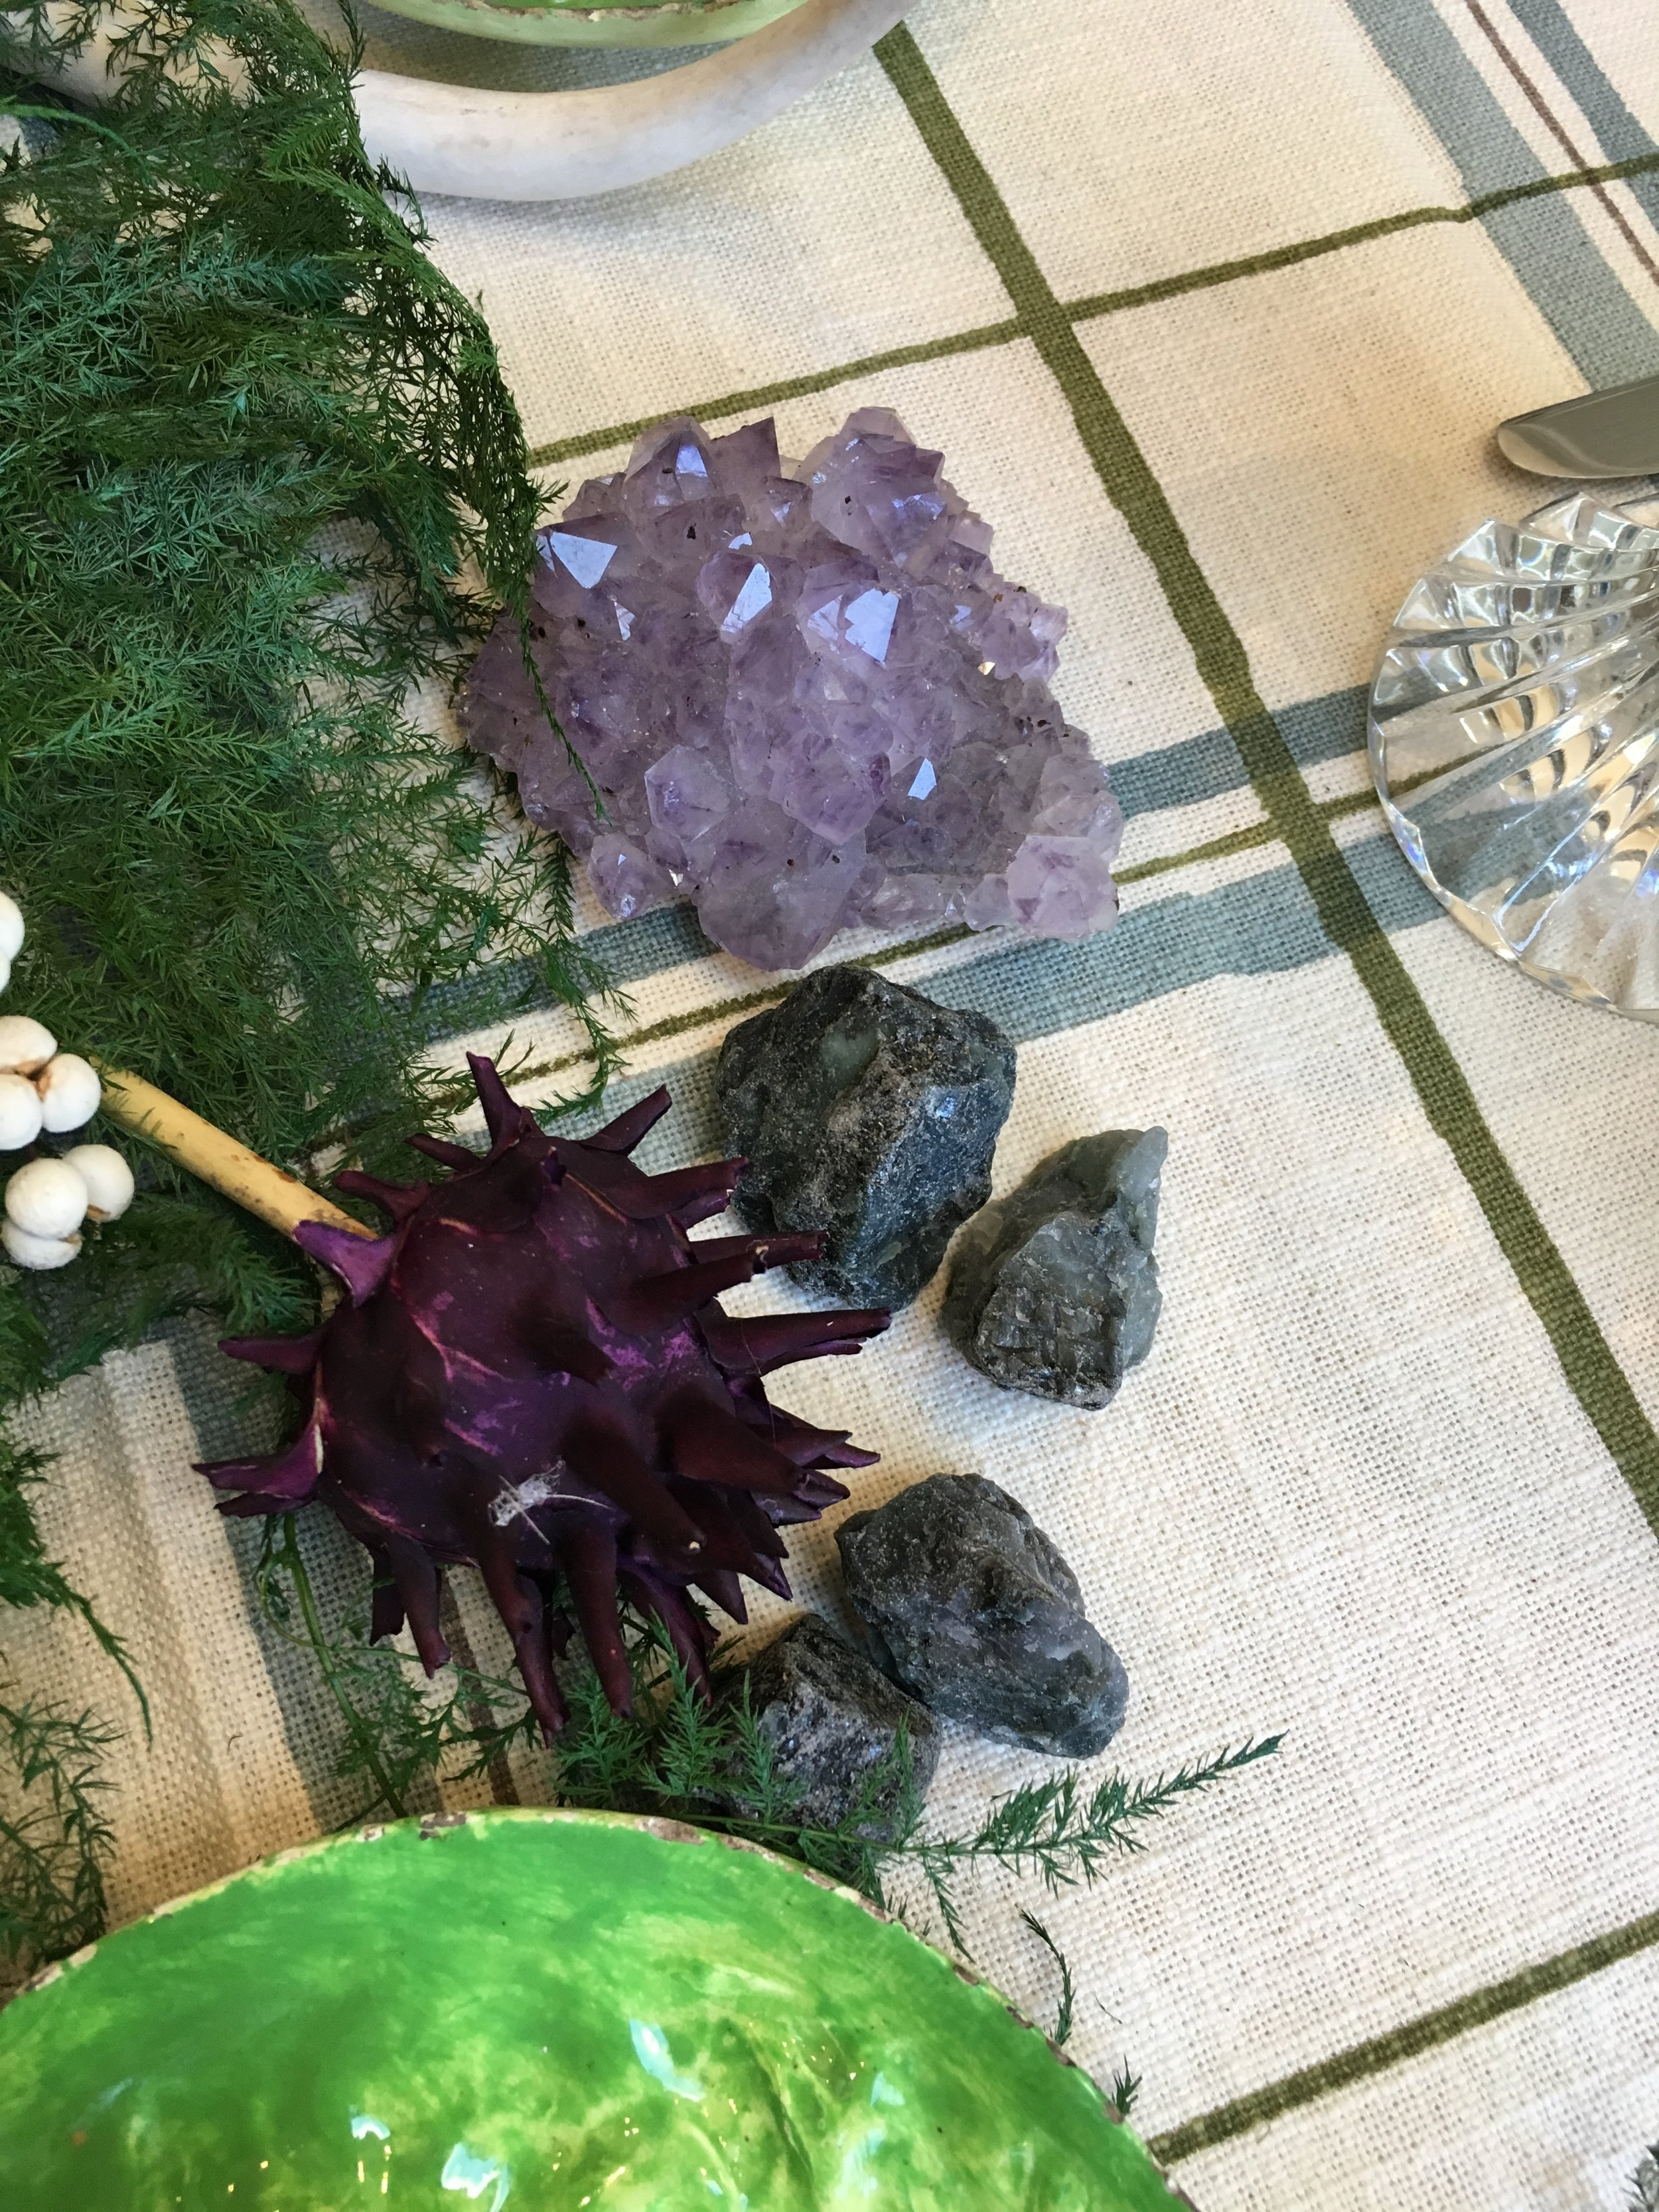 Raw Amethyst and raw emeralds keep things organic but in a glam way.